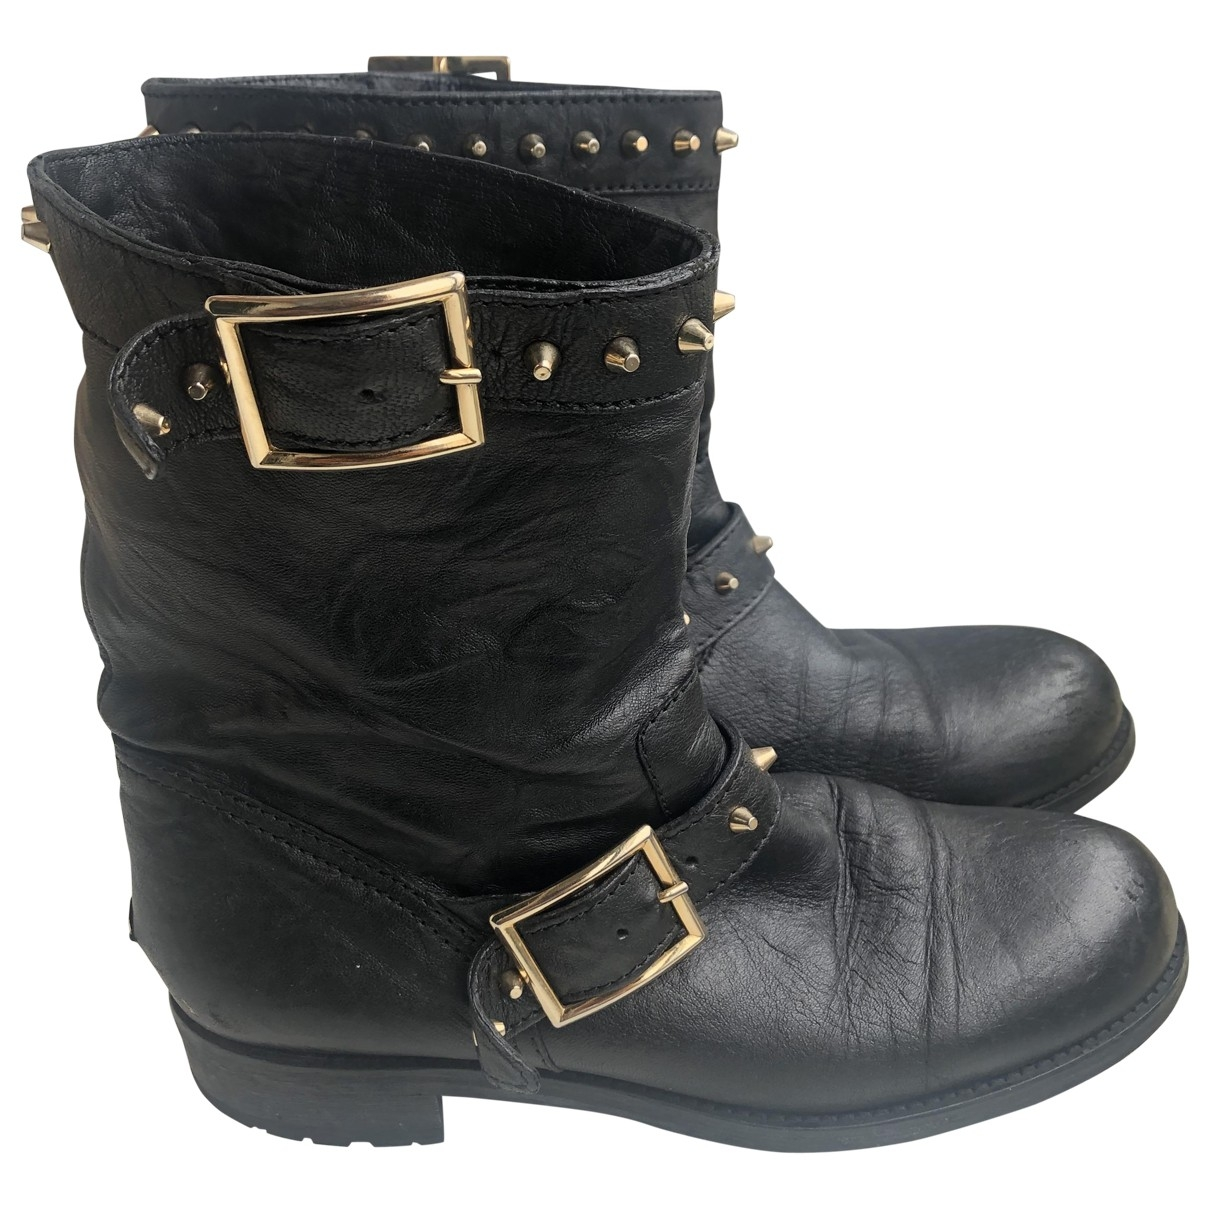 Jimmy Choo \N Black Leather Boots for Women 39 EU